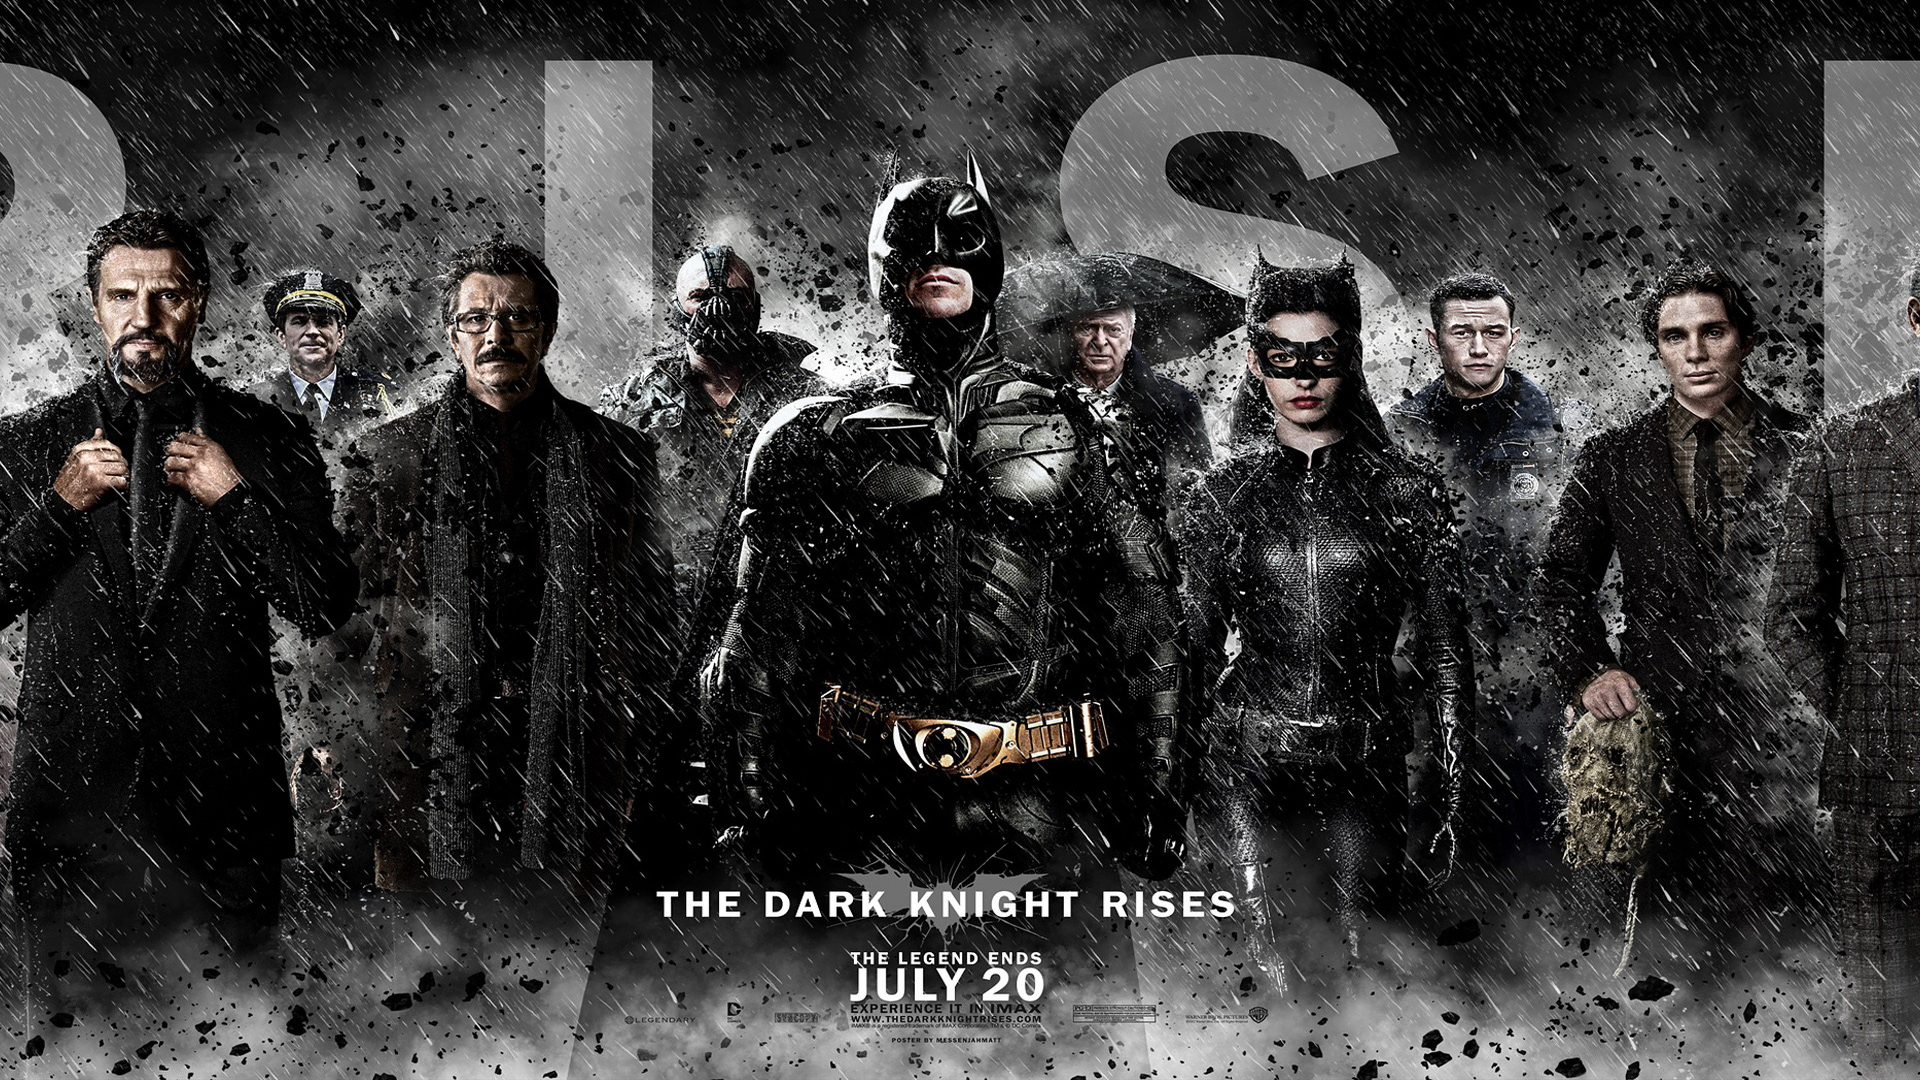 the dark knight rises wallpaper hd 1920x1080 wallpapersafari